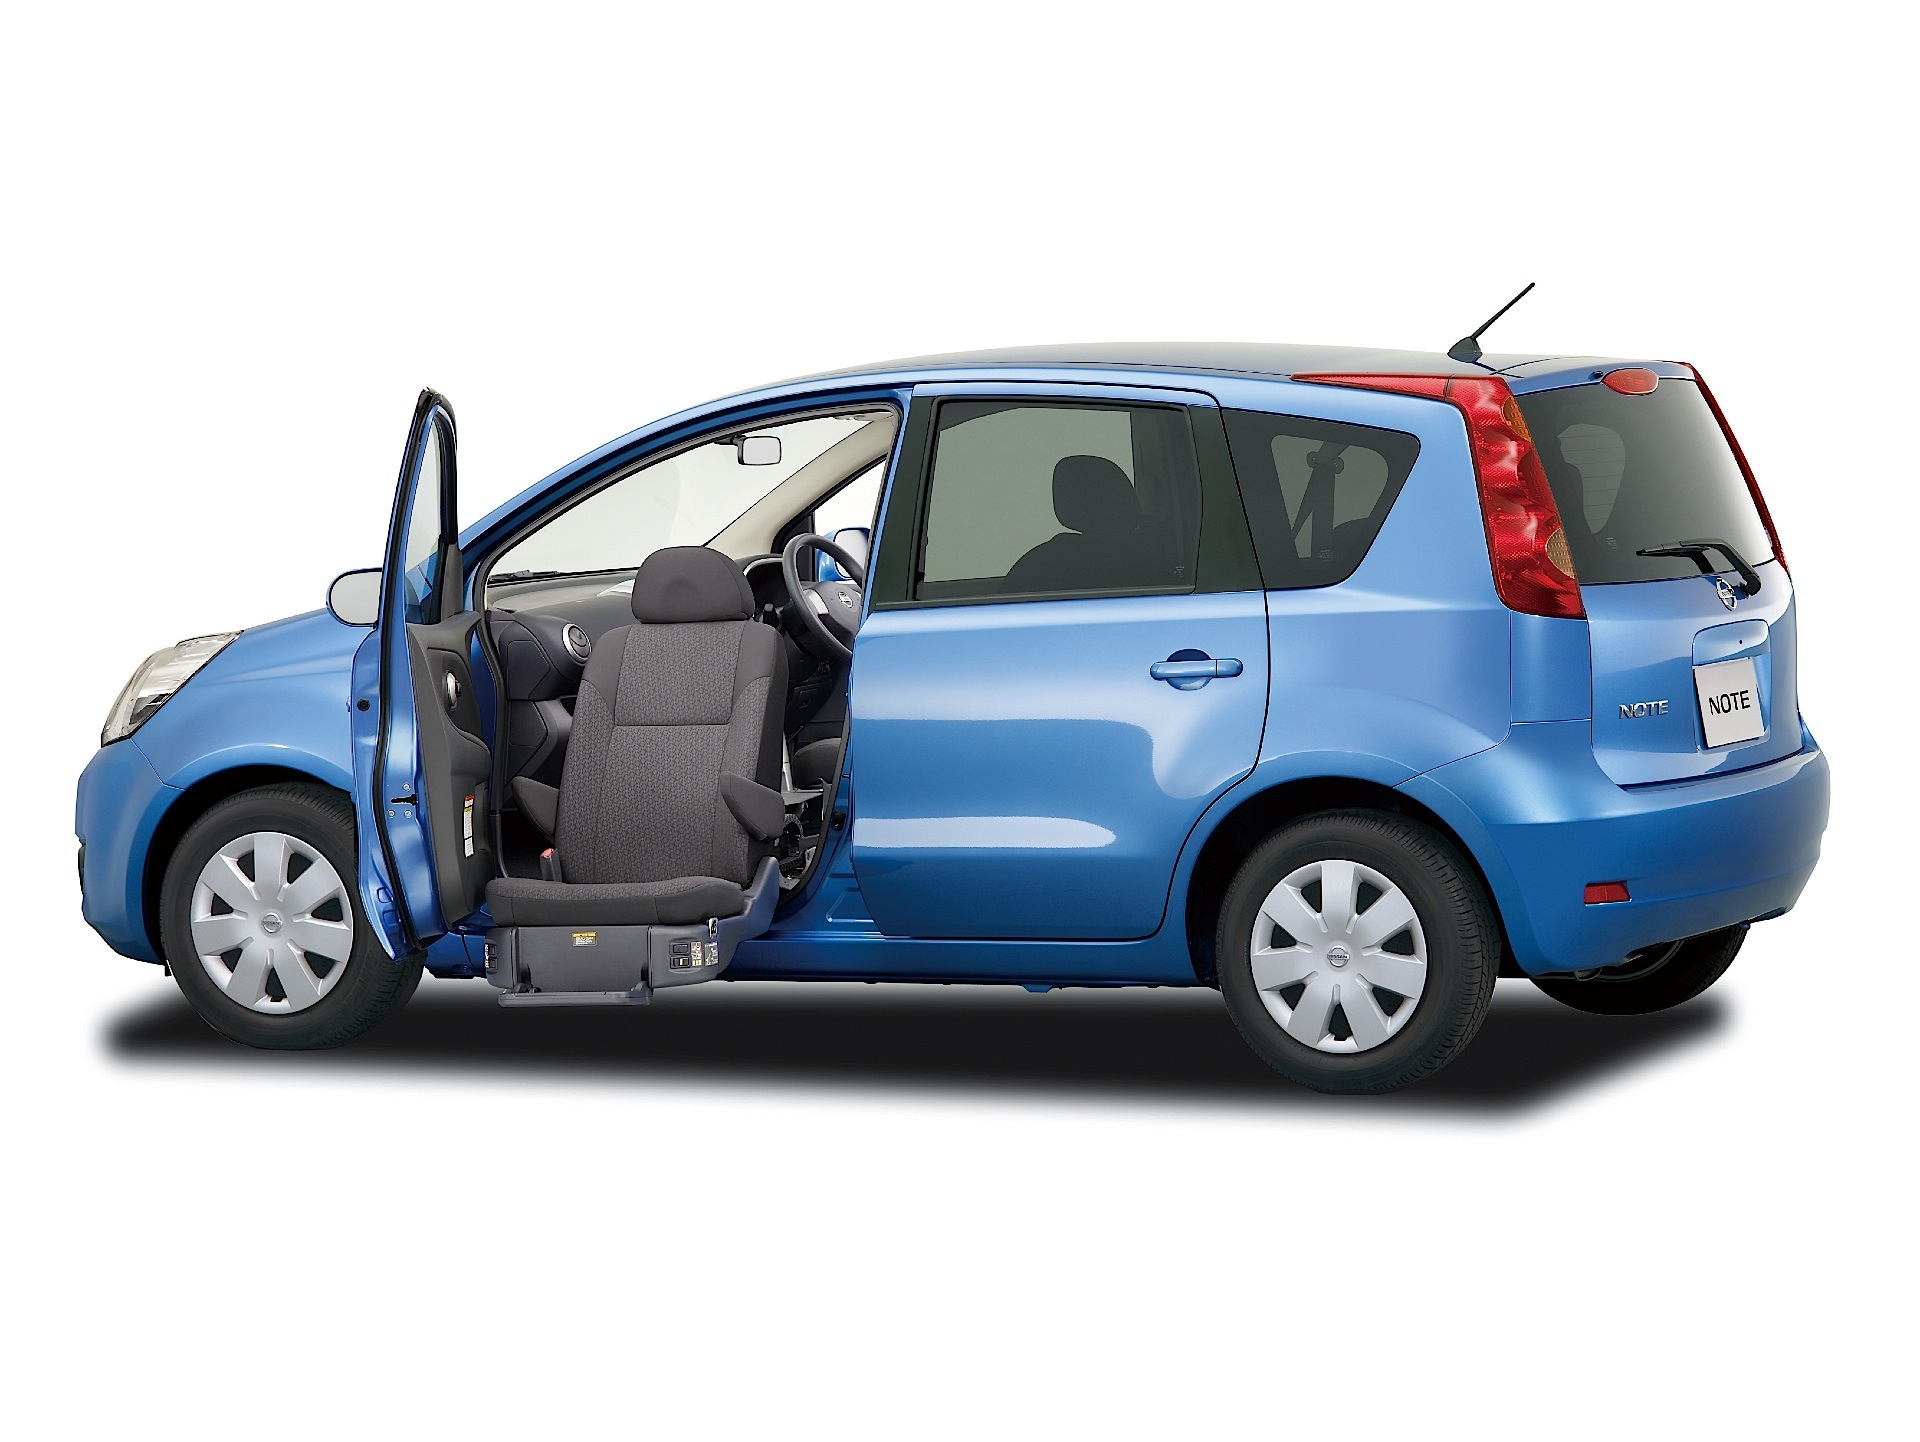 2008 Nissan Note #23